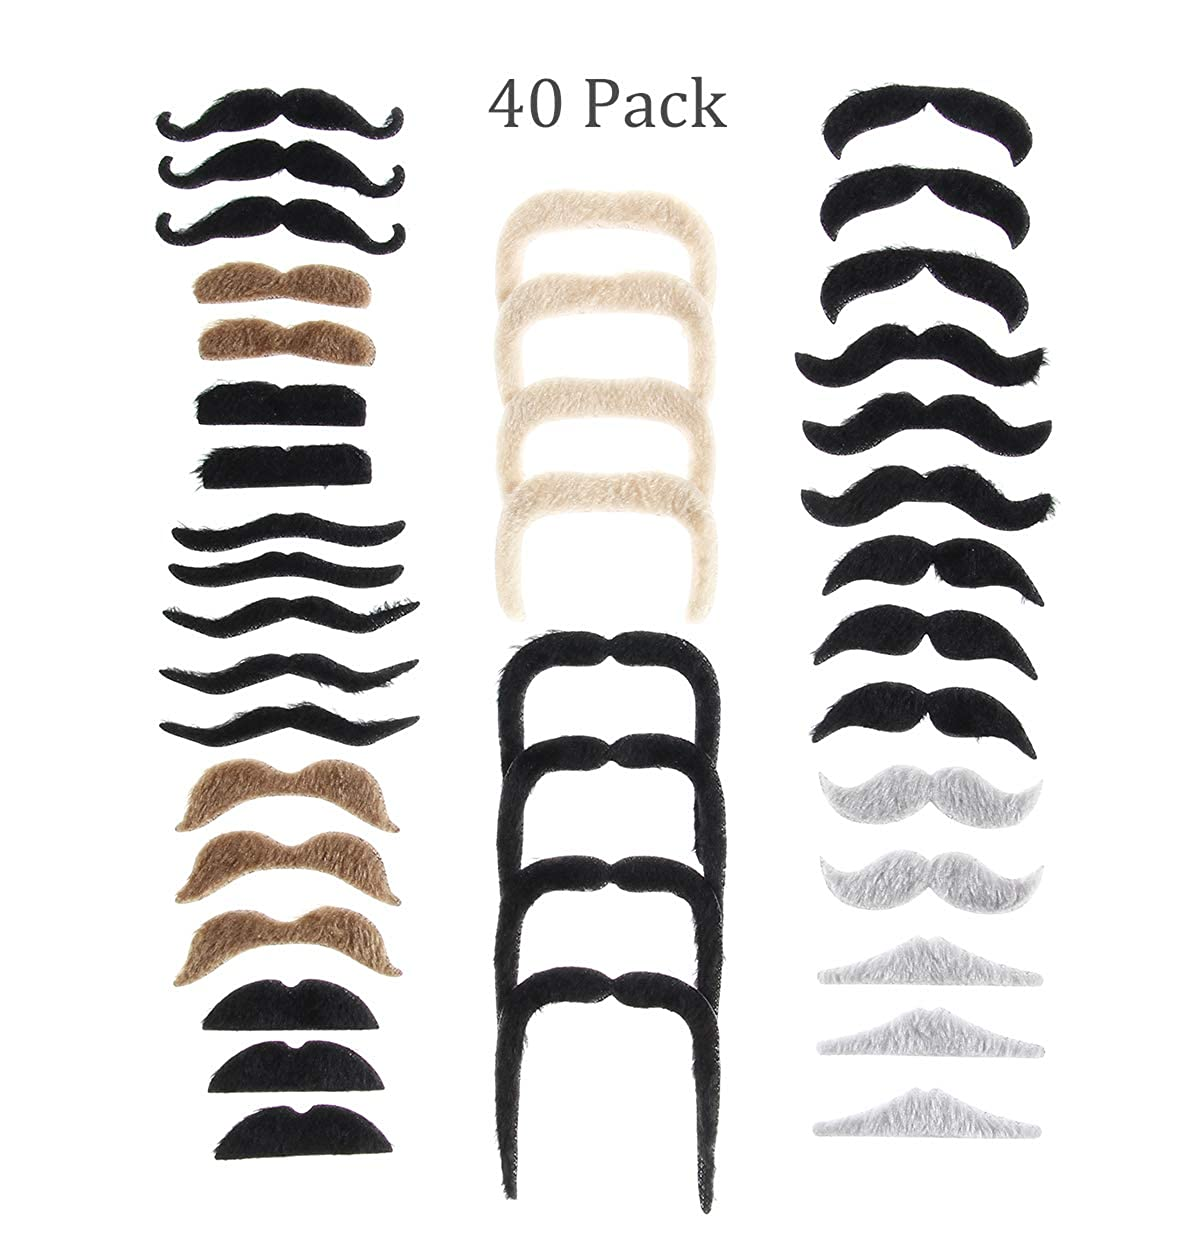 Grilong 40 Pack Self Adhesive Fake Mustaches Novelty Fiesta Mexican Party Supplies Decorations